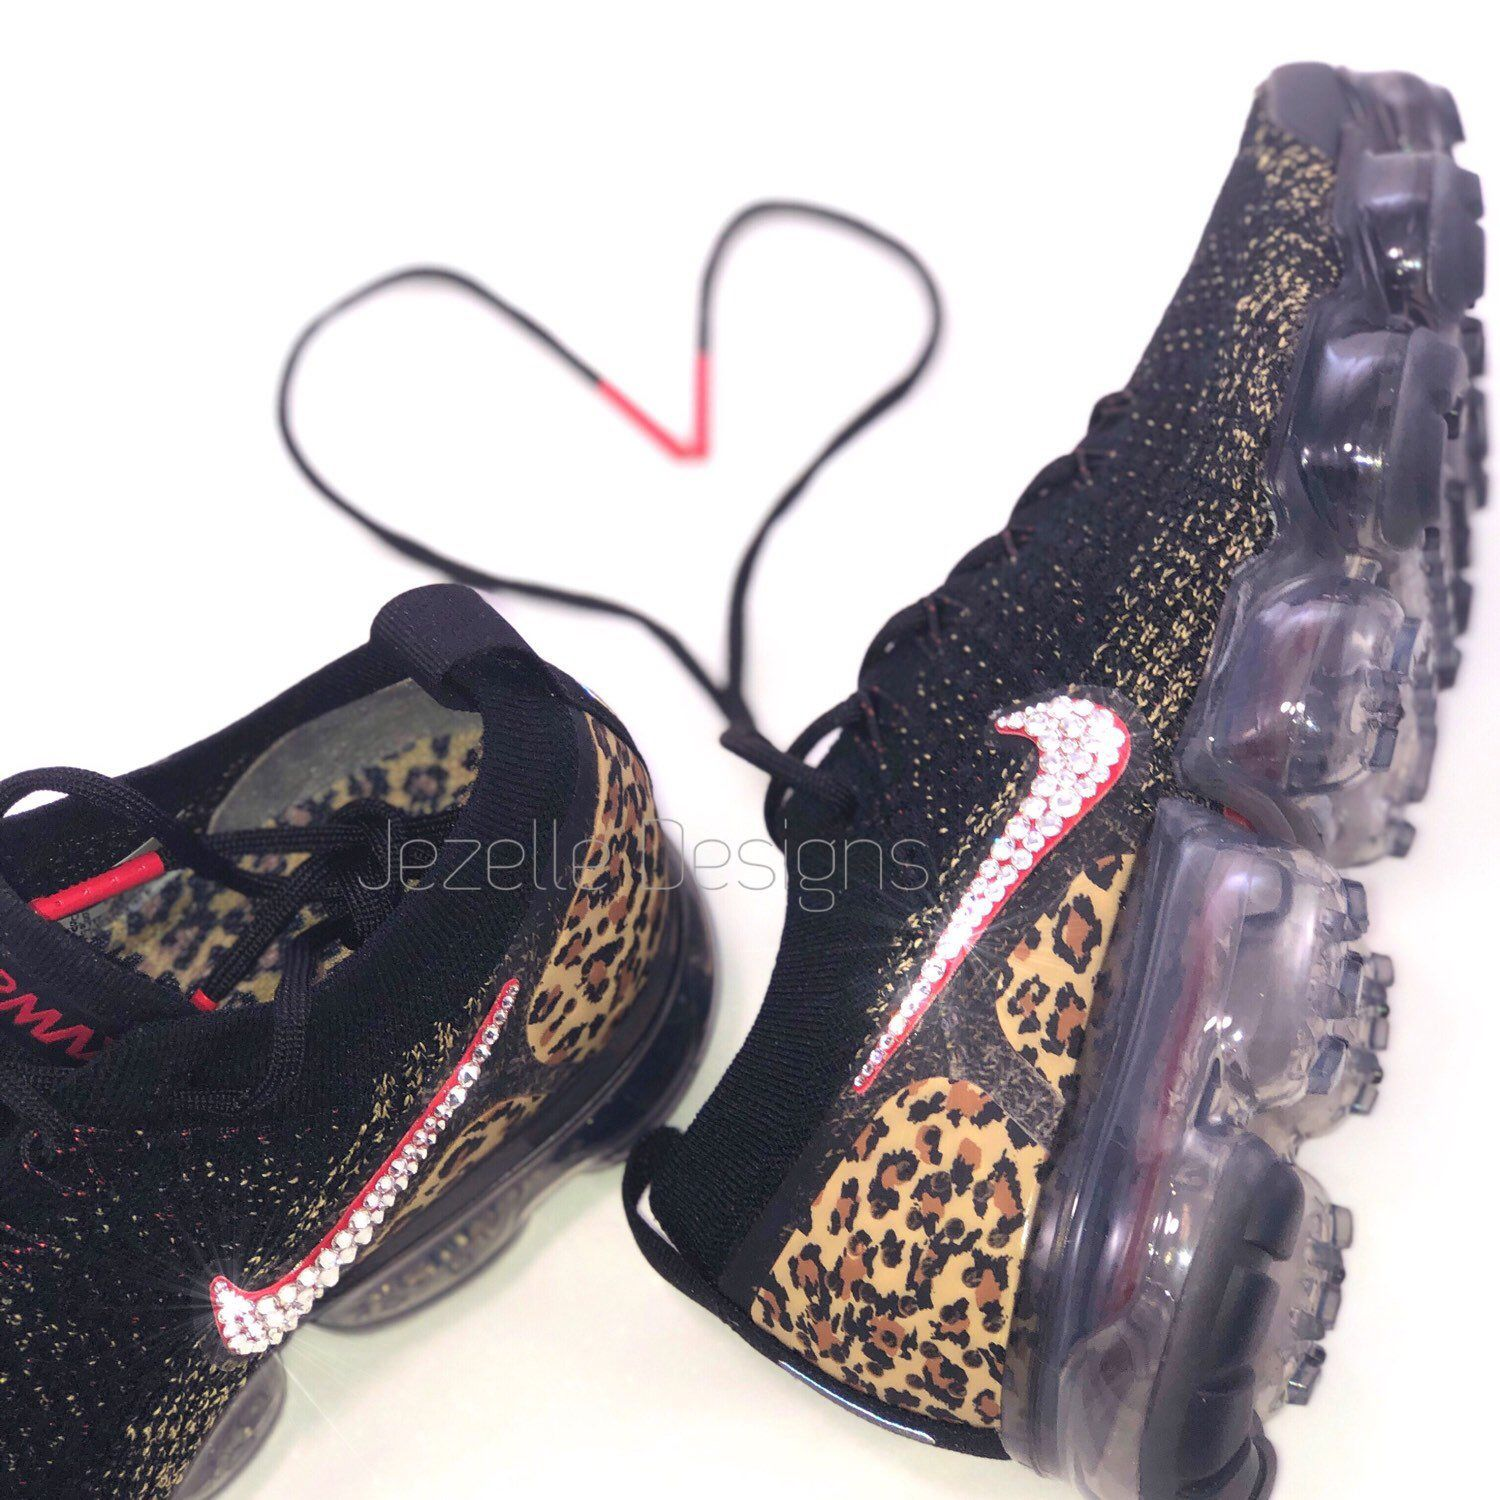 048294aa Brand New In Box - Authentic Blinged Out Womens Nike Air VaporMax Flyknit 2  Shoes in Animal Print- Custom Hand Jeweled w/ Swarovski Crystals!